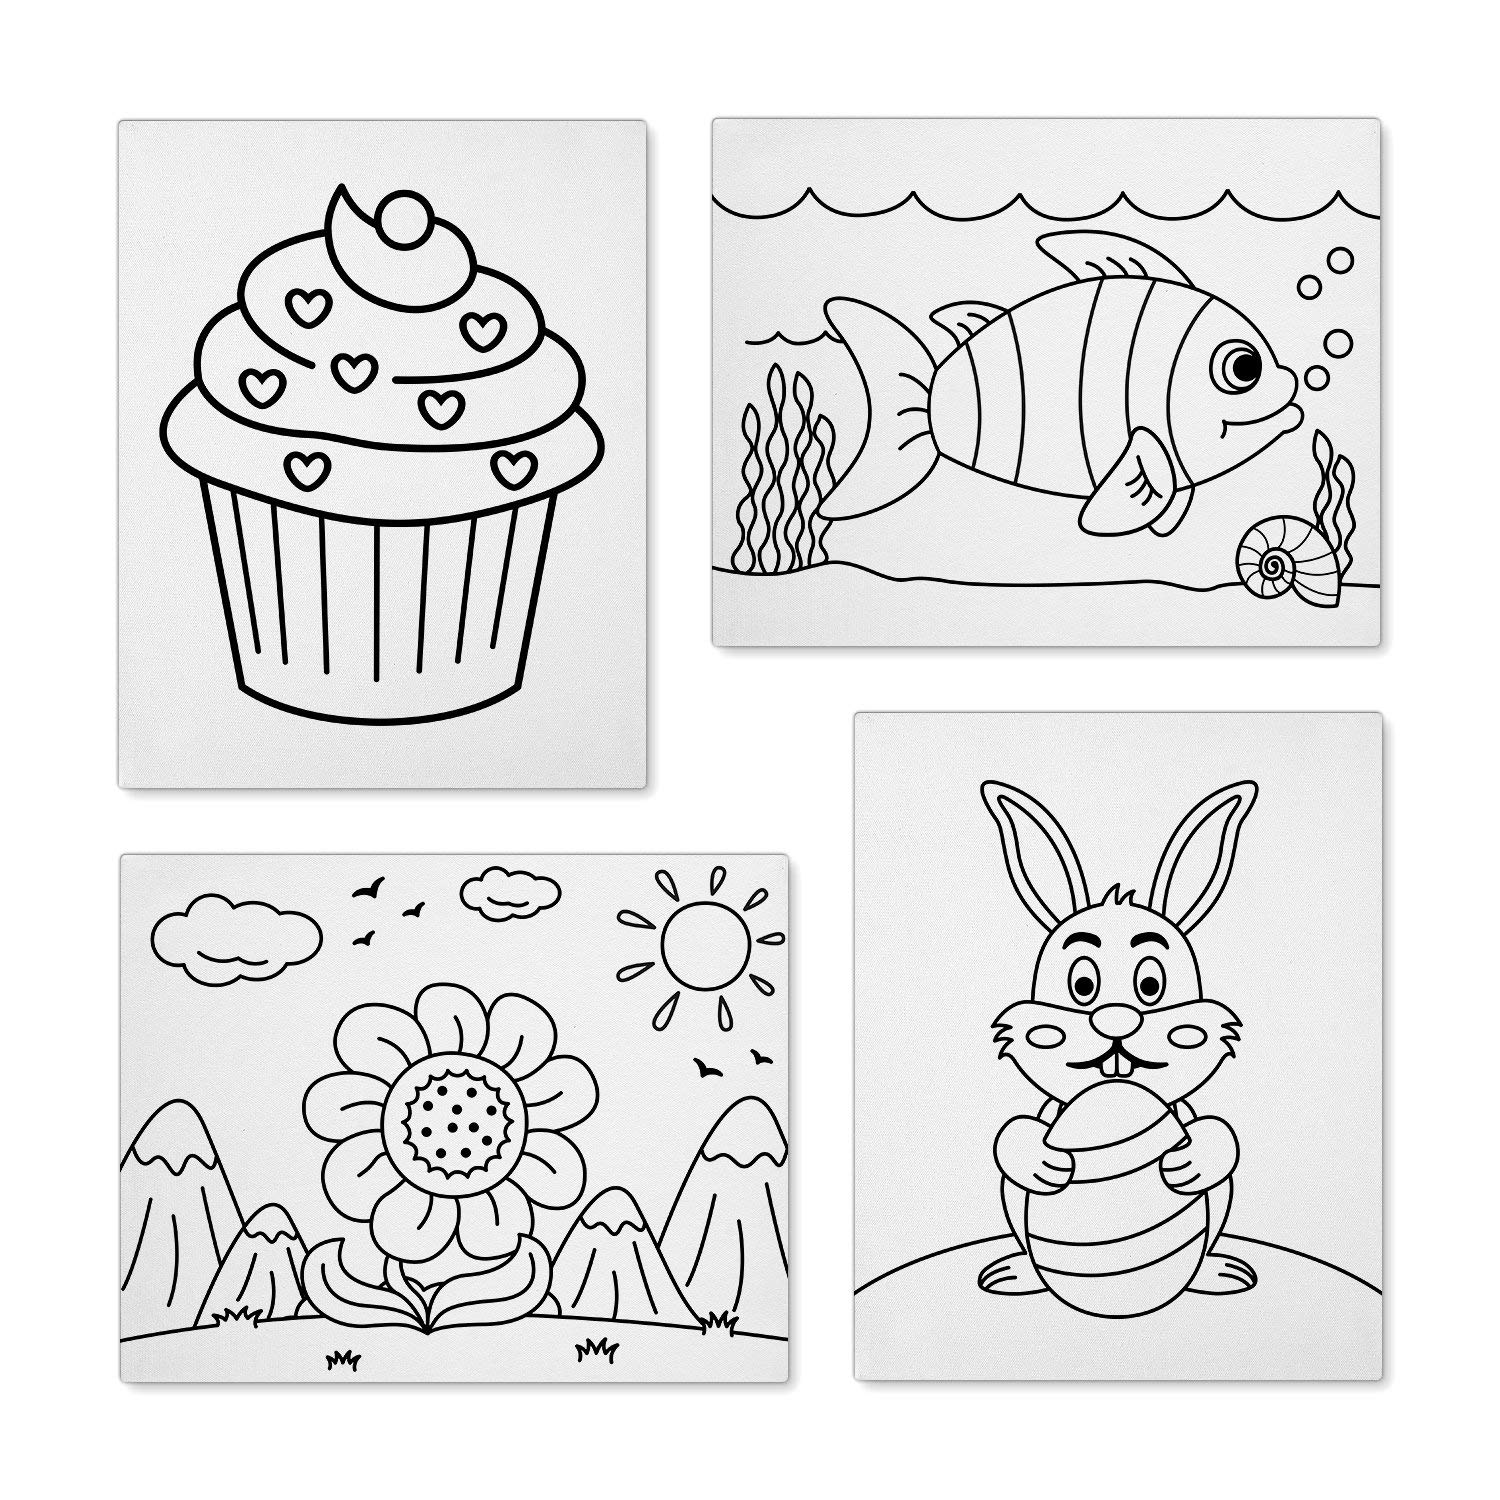 Canvasify Pre Printed Canvas Boards - Ready to Paint